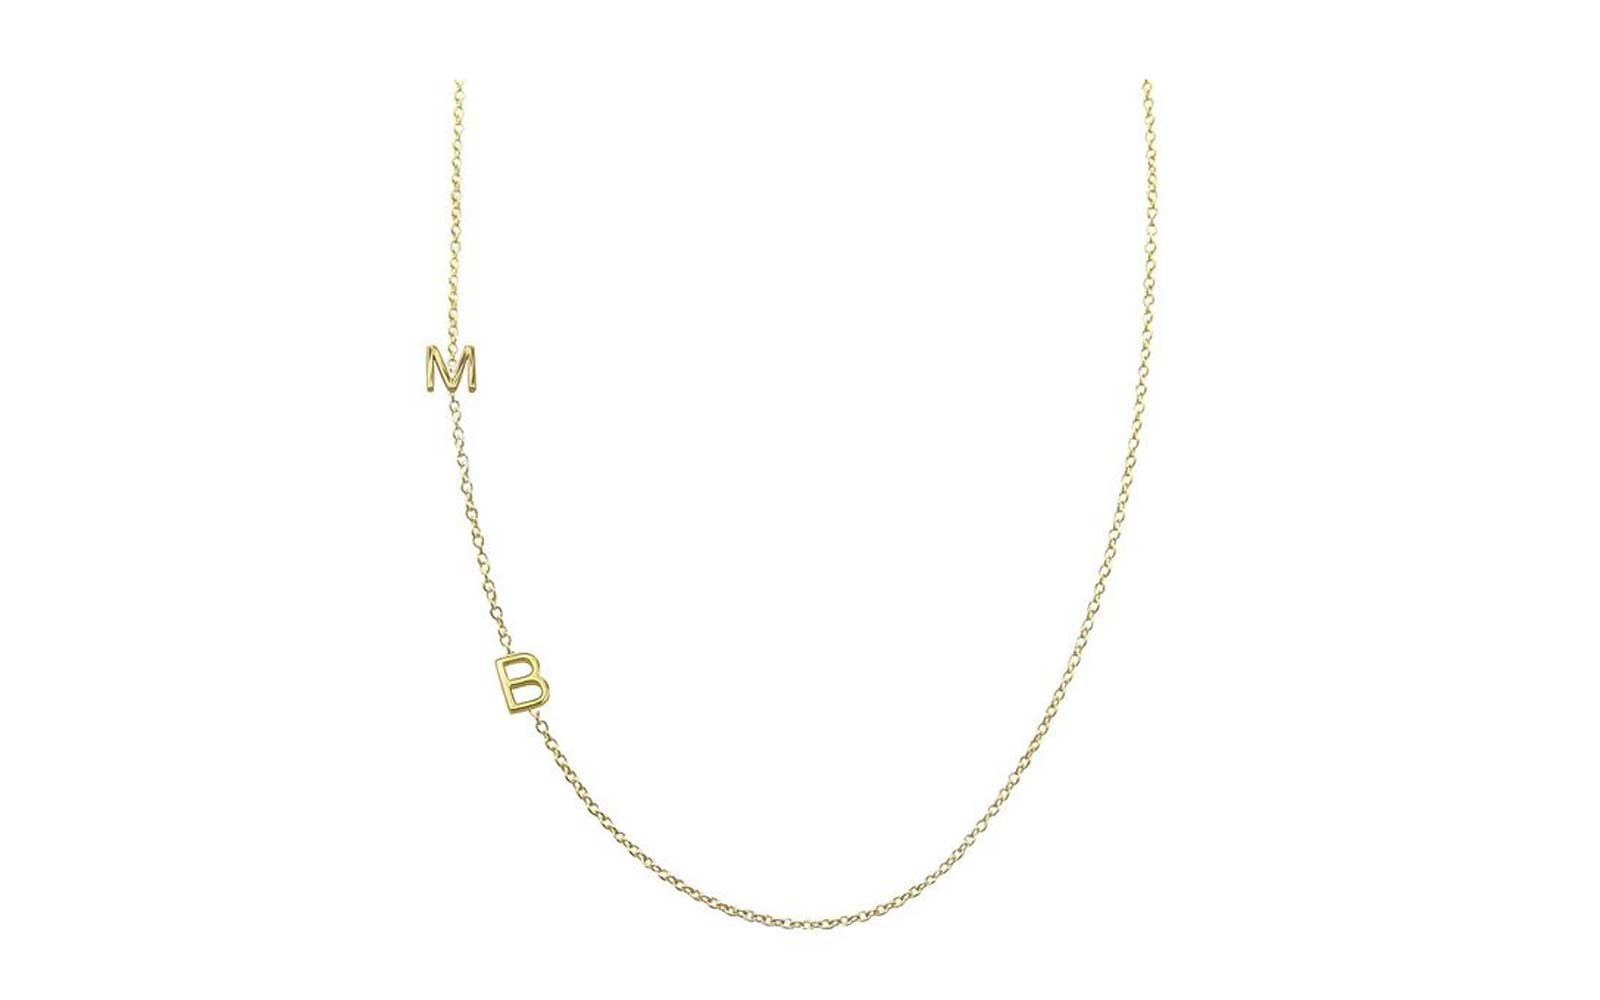 Maya Brenner Asymmetrical Character Necklace